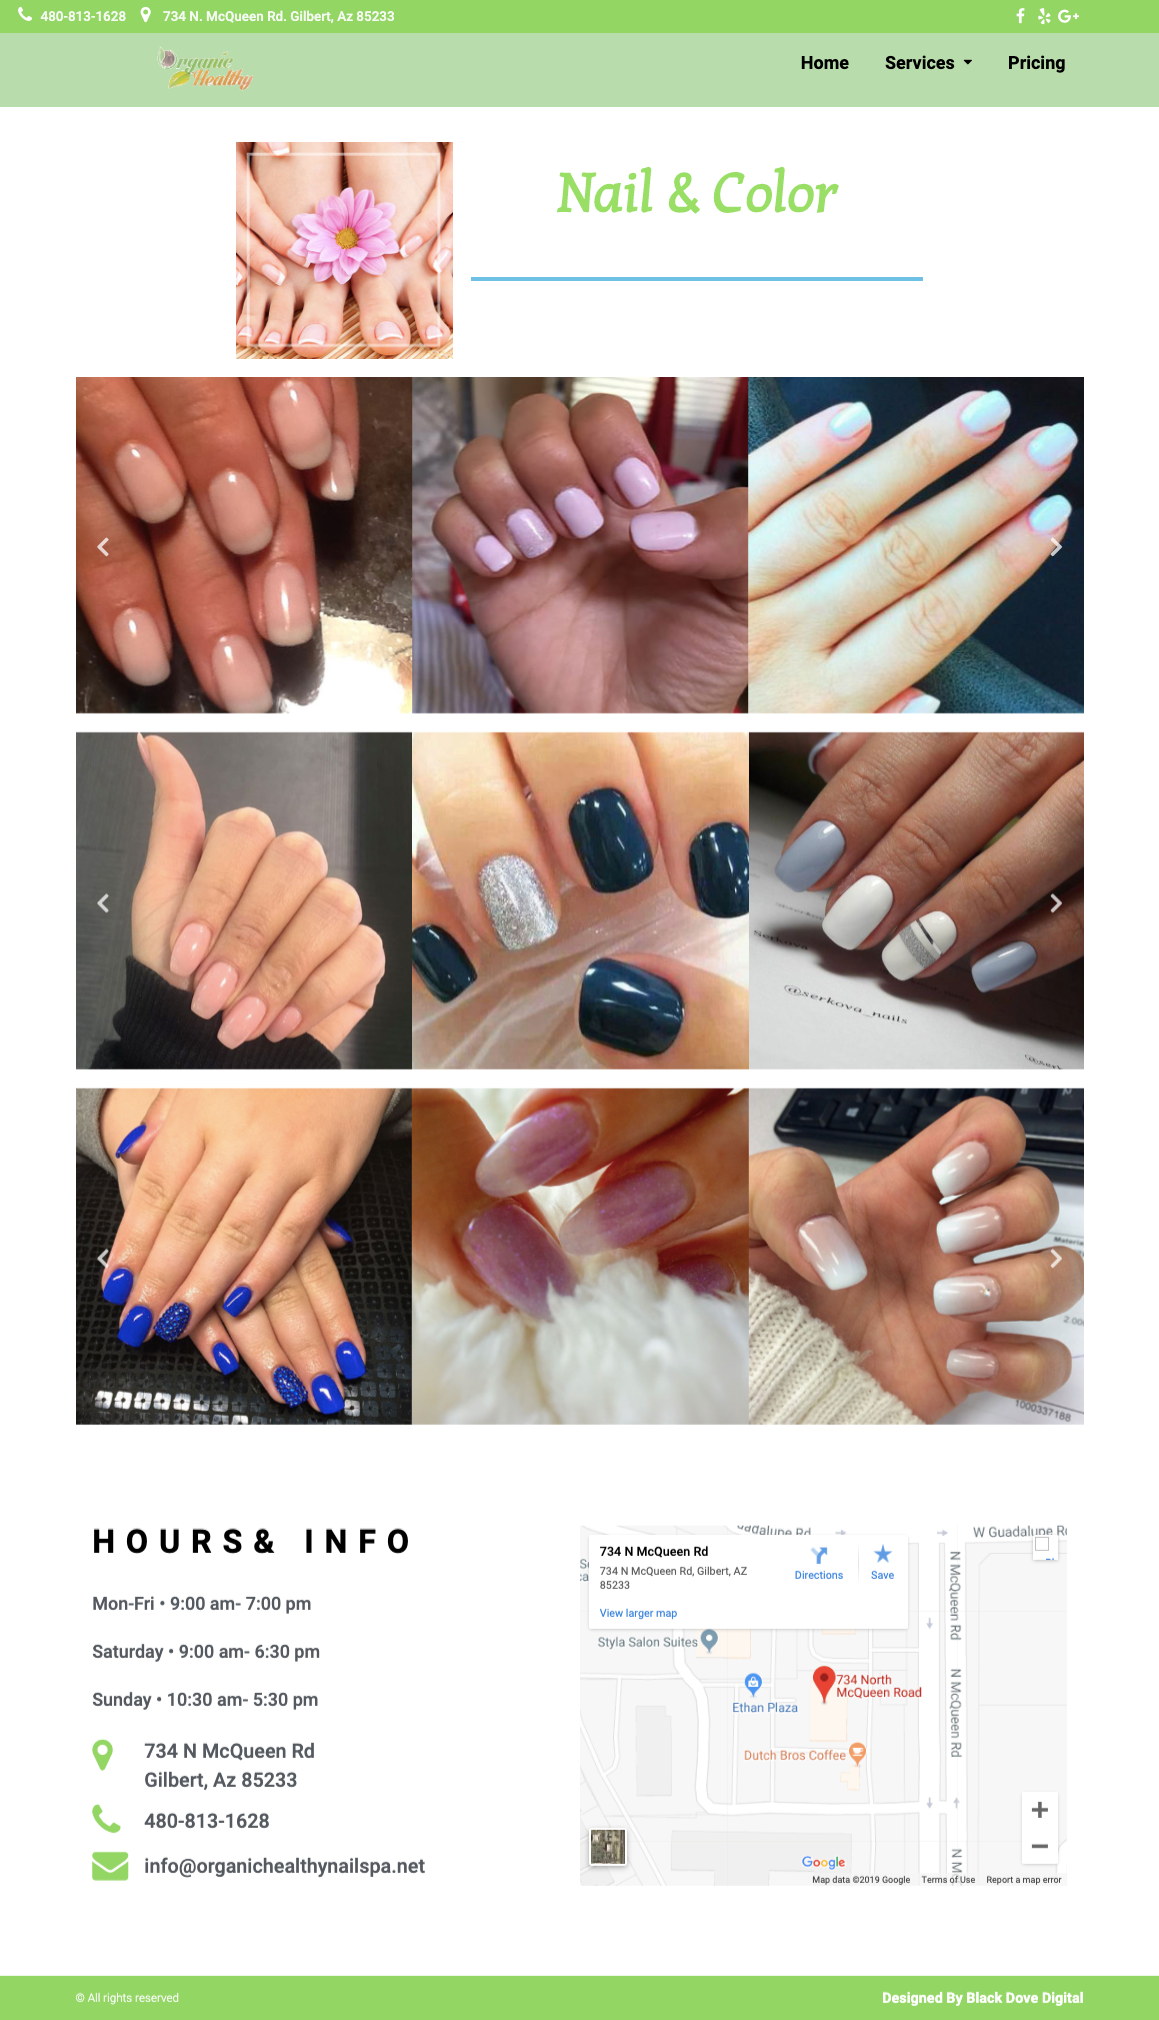 screencapture-organichealthynailspa-net-nail-and-color-services-2019-05-05-21_28_03